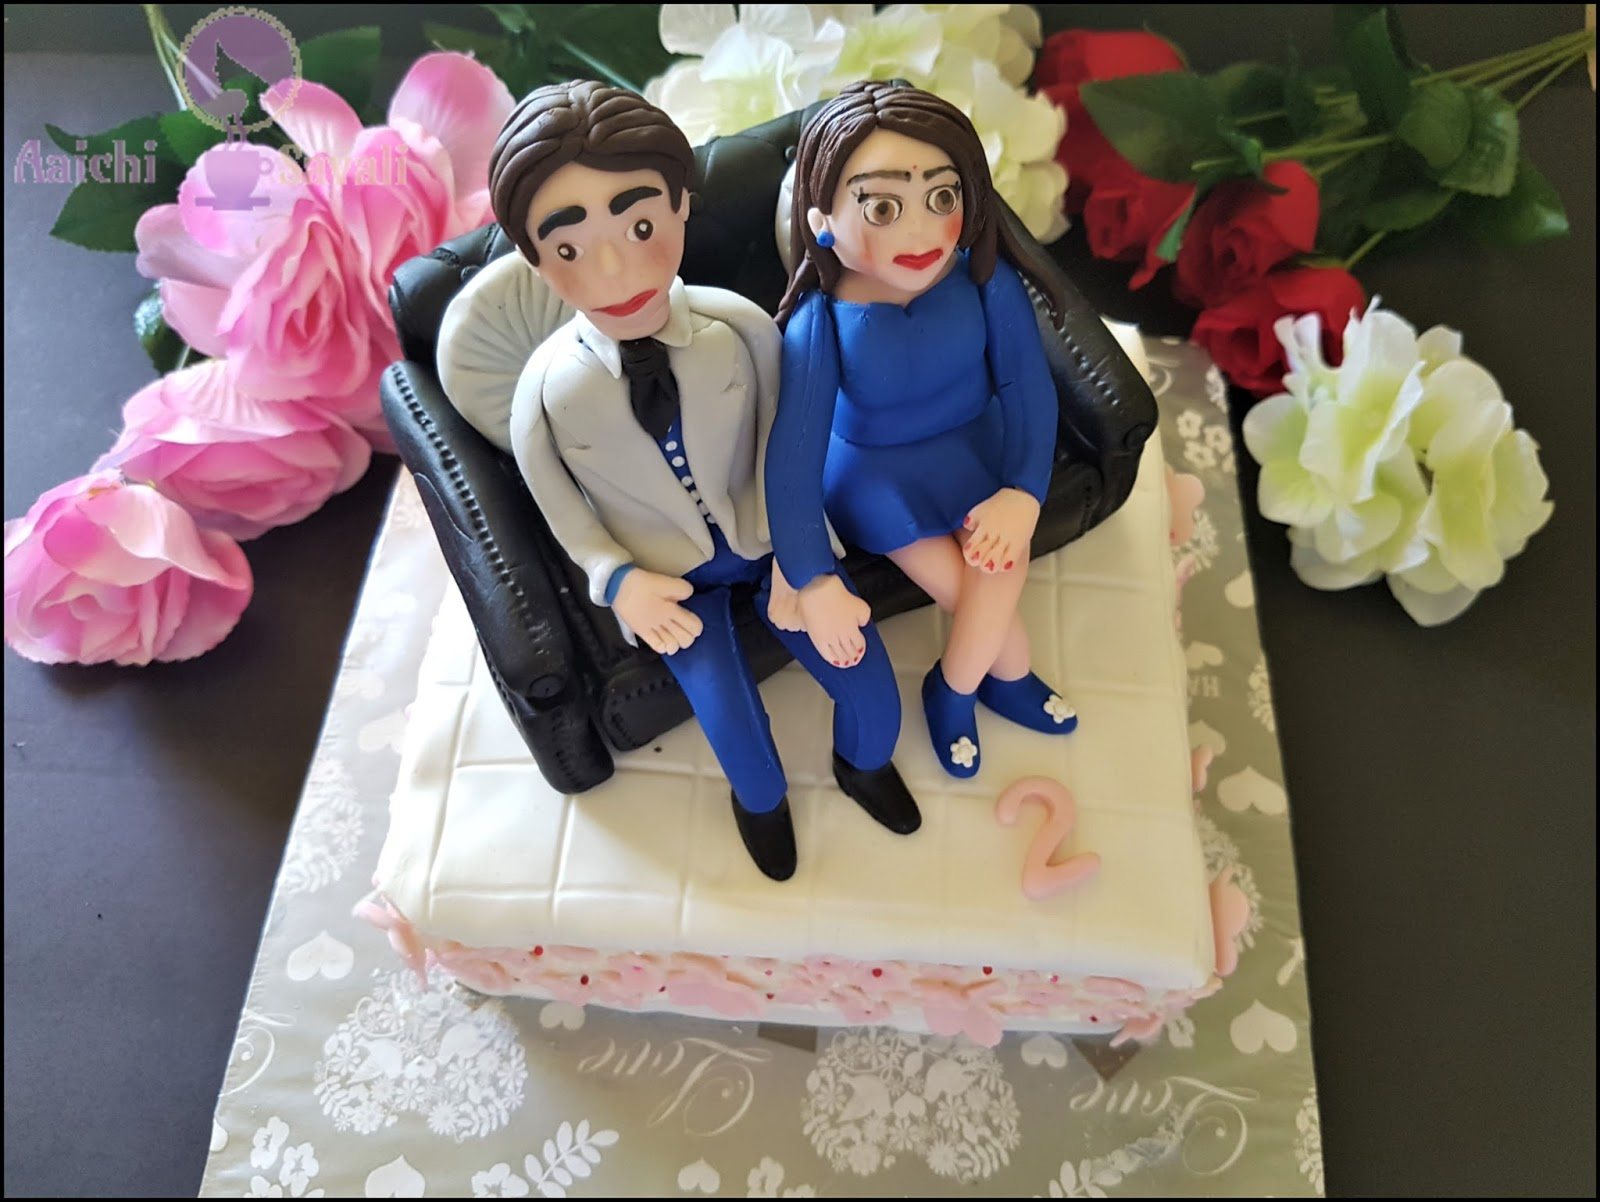 how do you fix a hole in leather sofa small for bedroom to make edible fondant cake topper